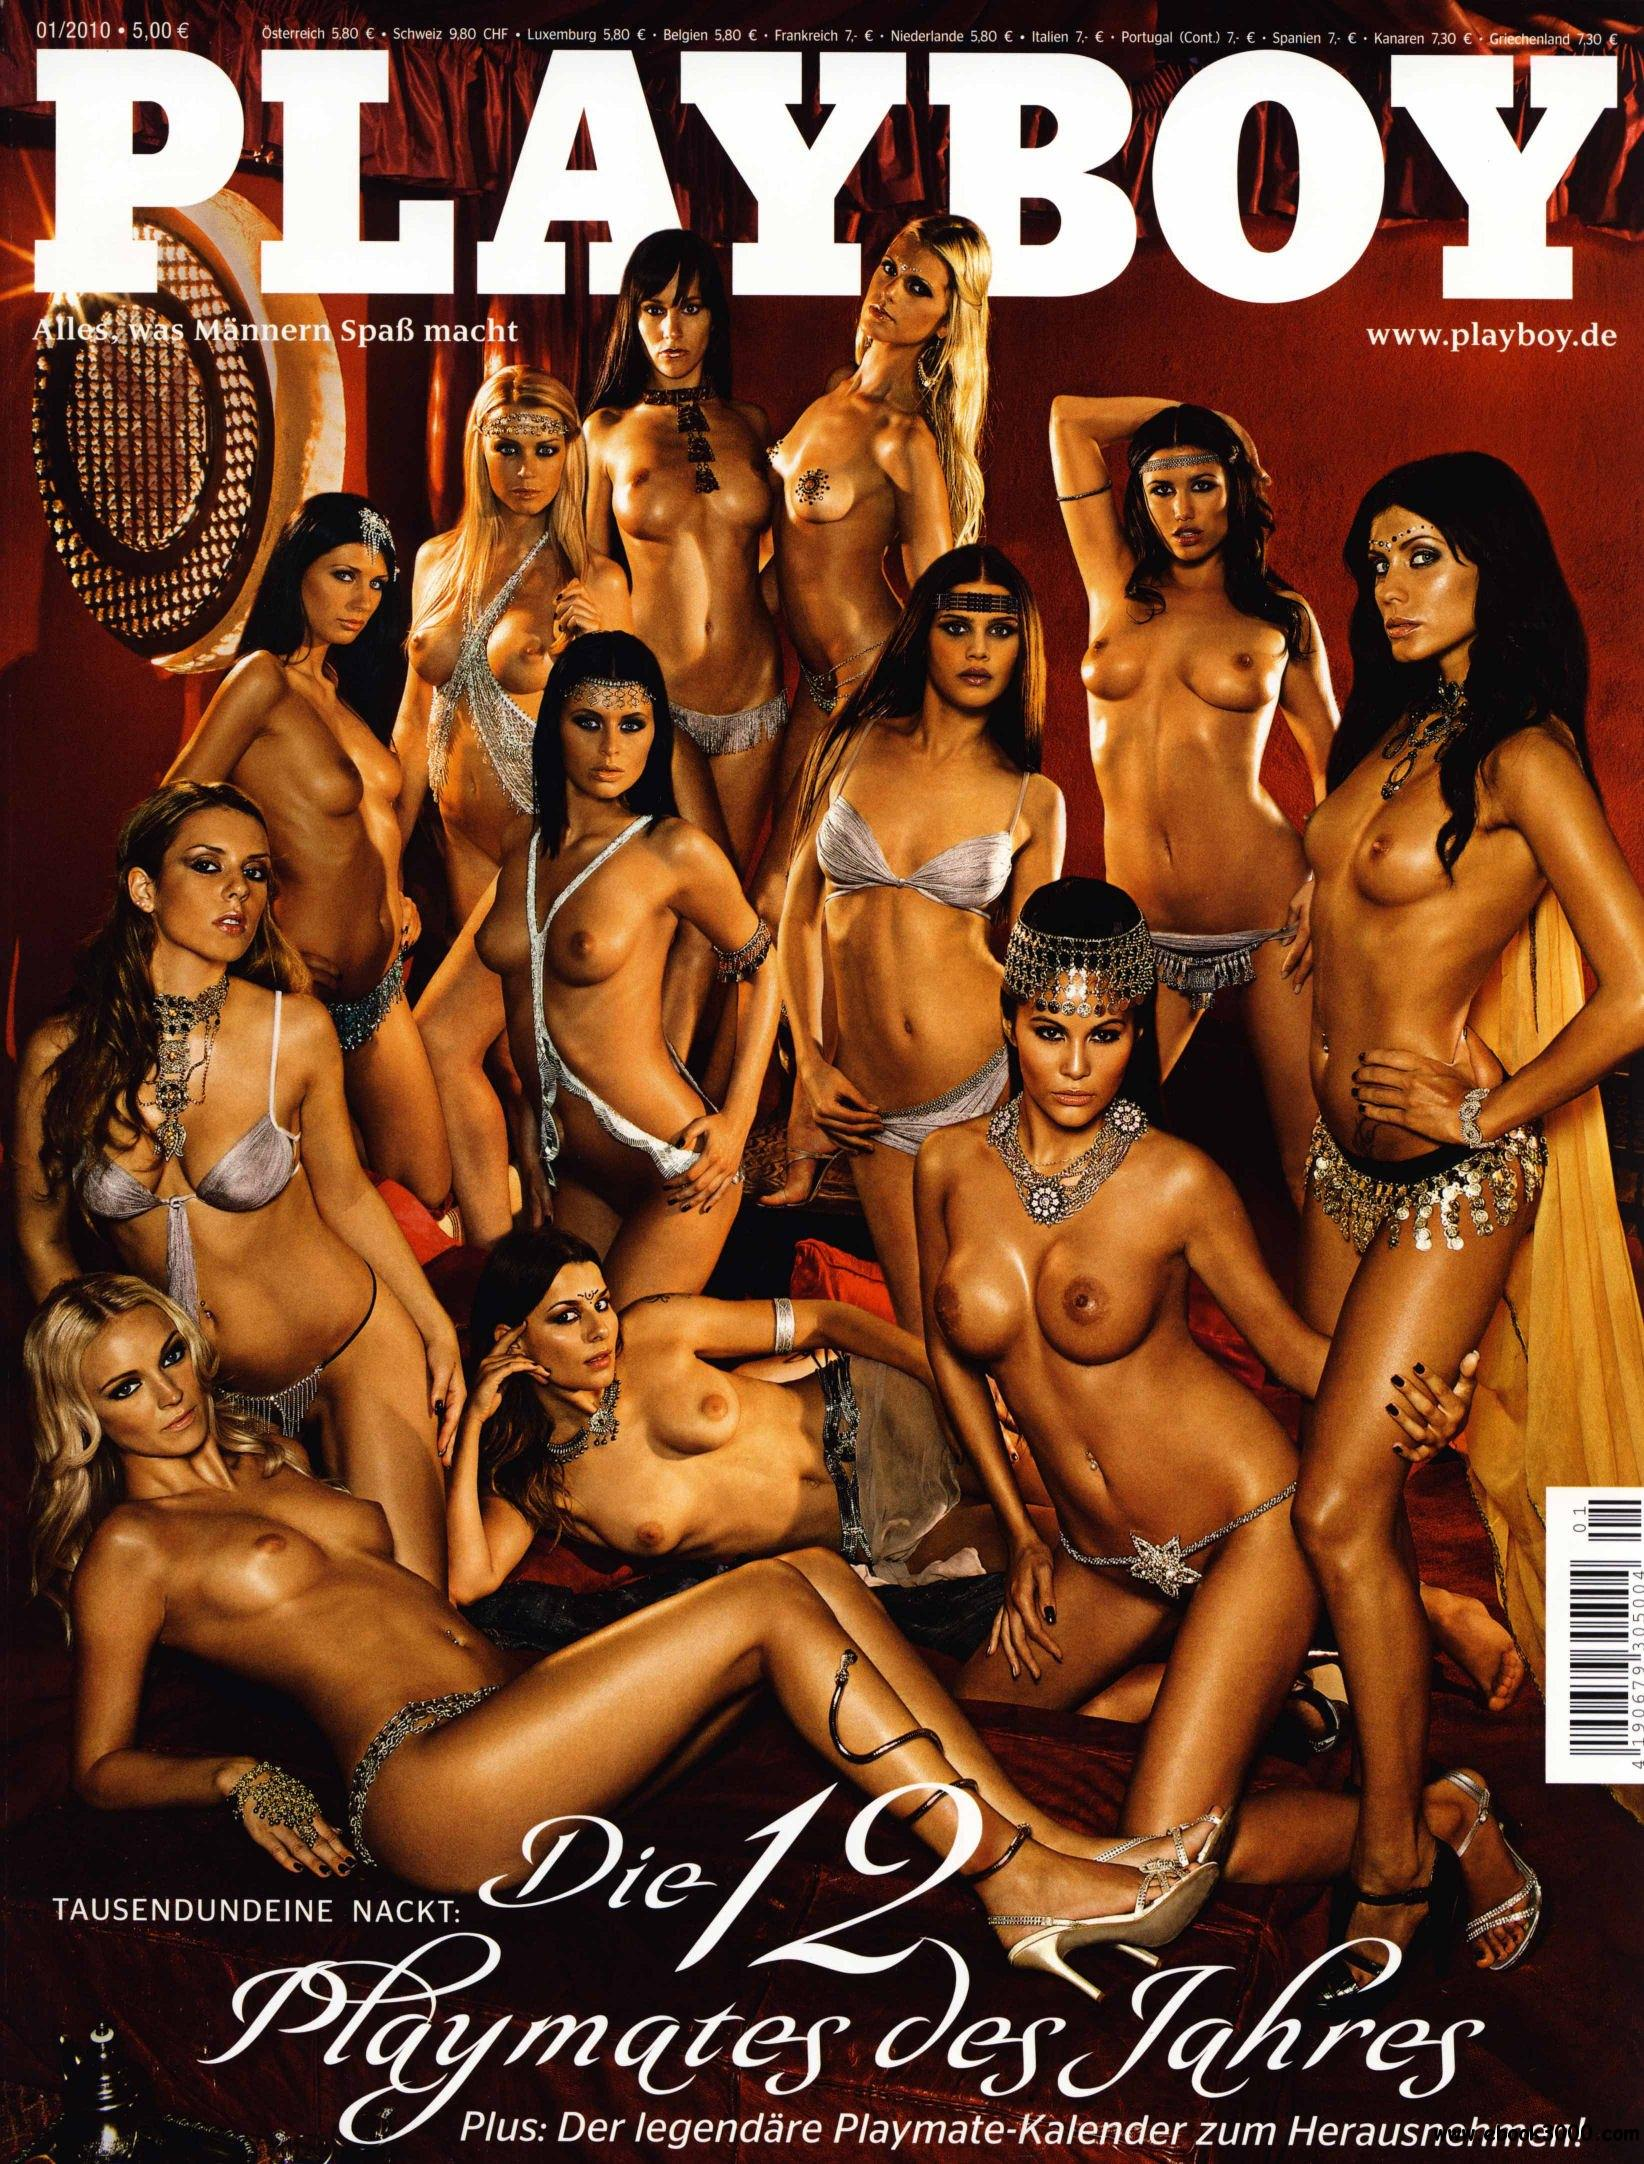 Playboy Germany - January 2010 free download